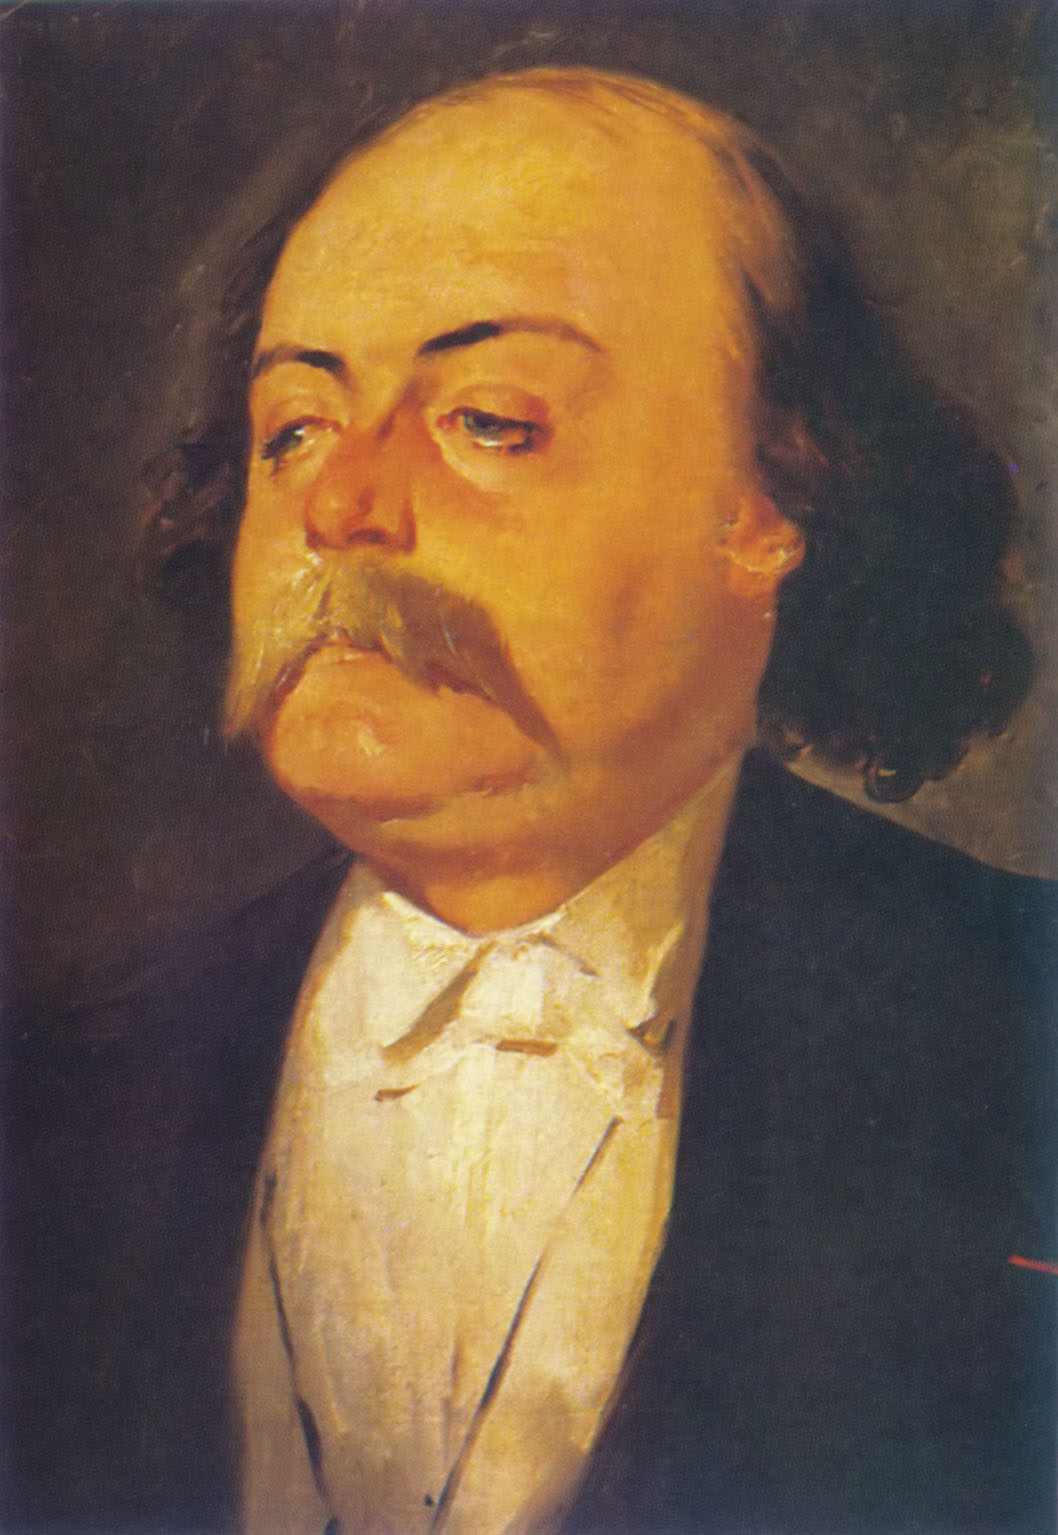 Citations de Gustave Flaubert